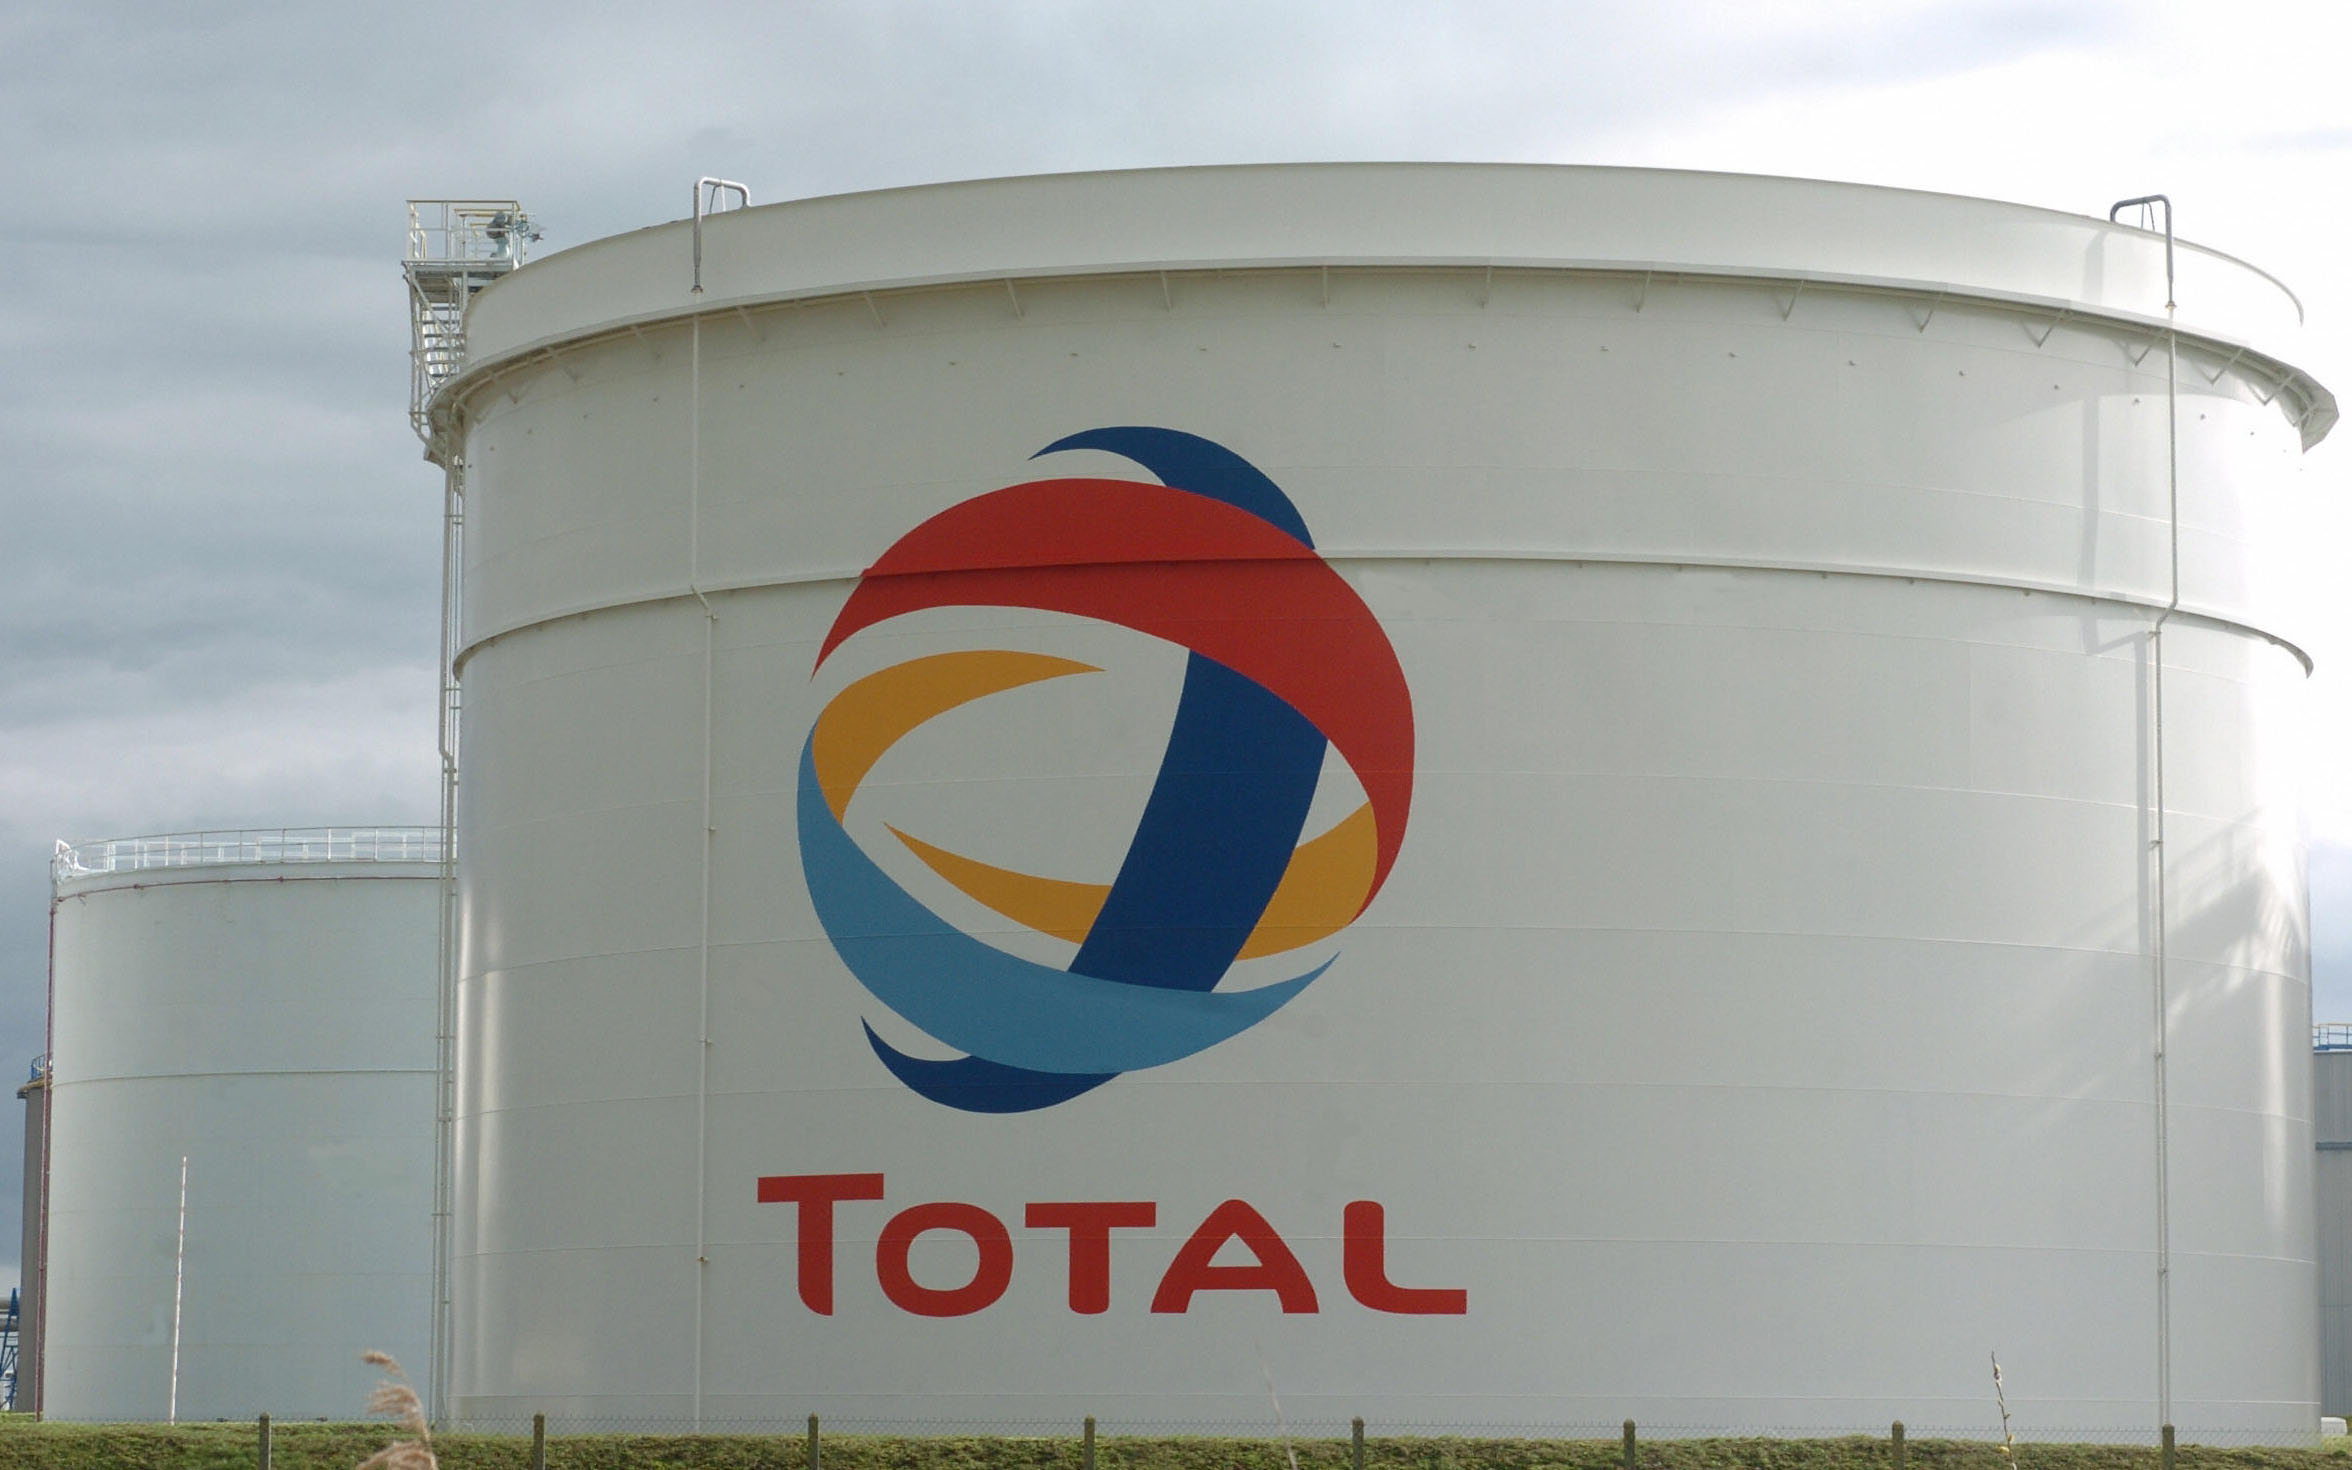 Total wins stake in Abu Dhabi's biggest onshore oil fields